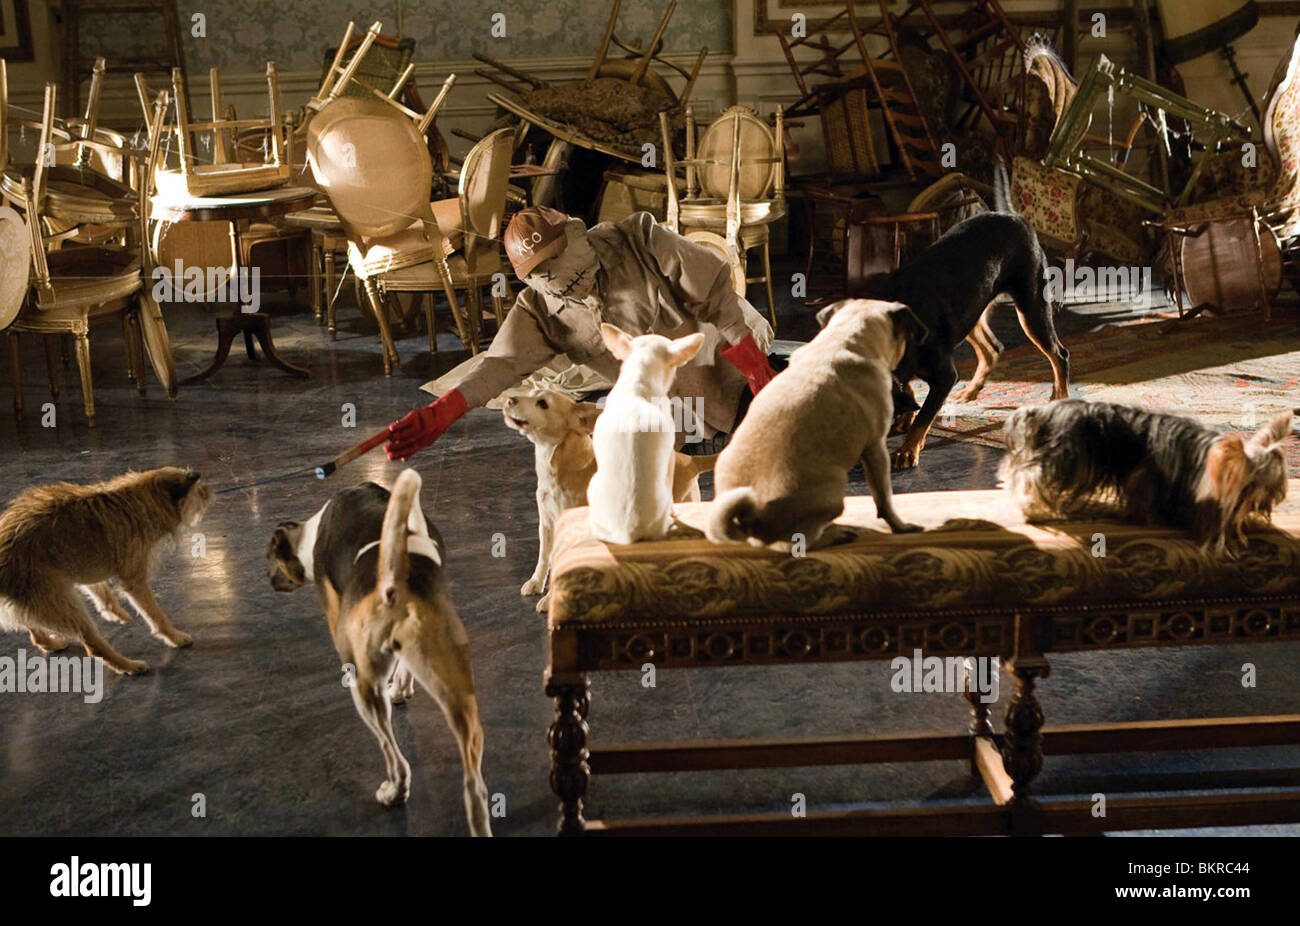 HOTEL FOR DOGS (2009) THOR FREUDENTHAL (DIR) 005 - Stock Image